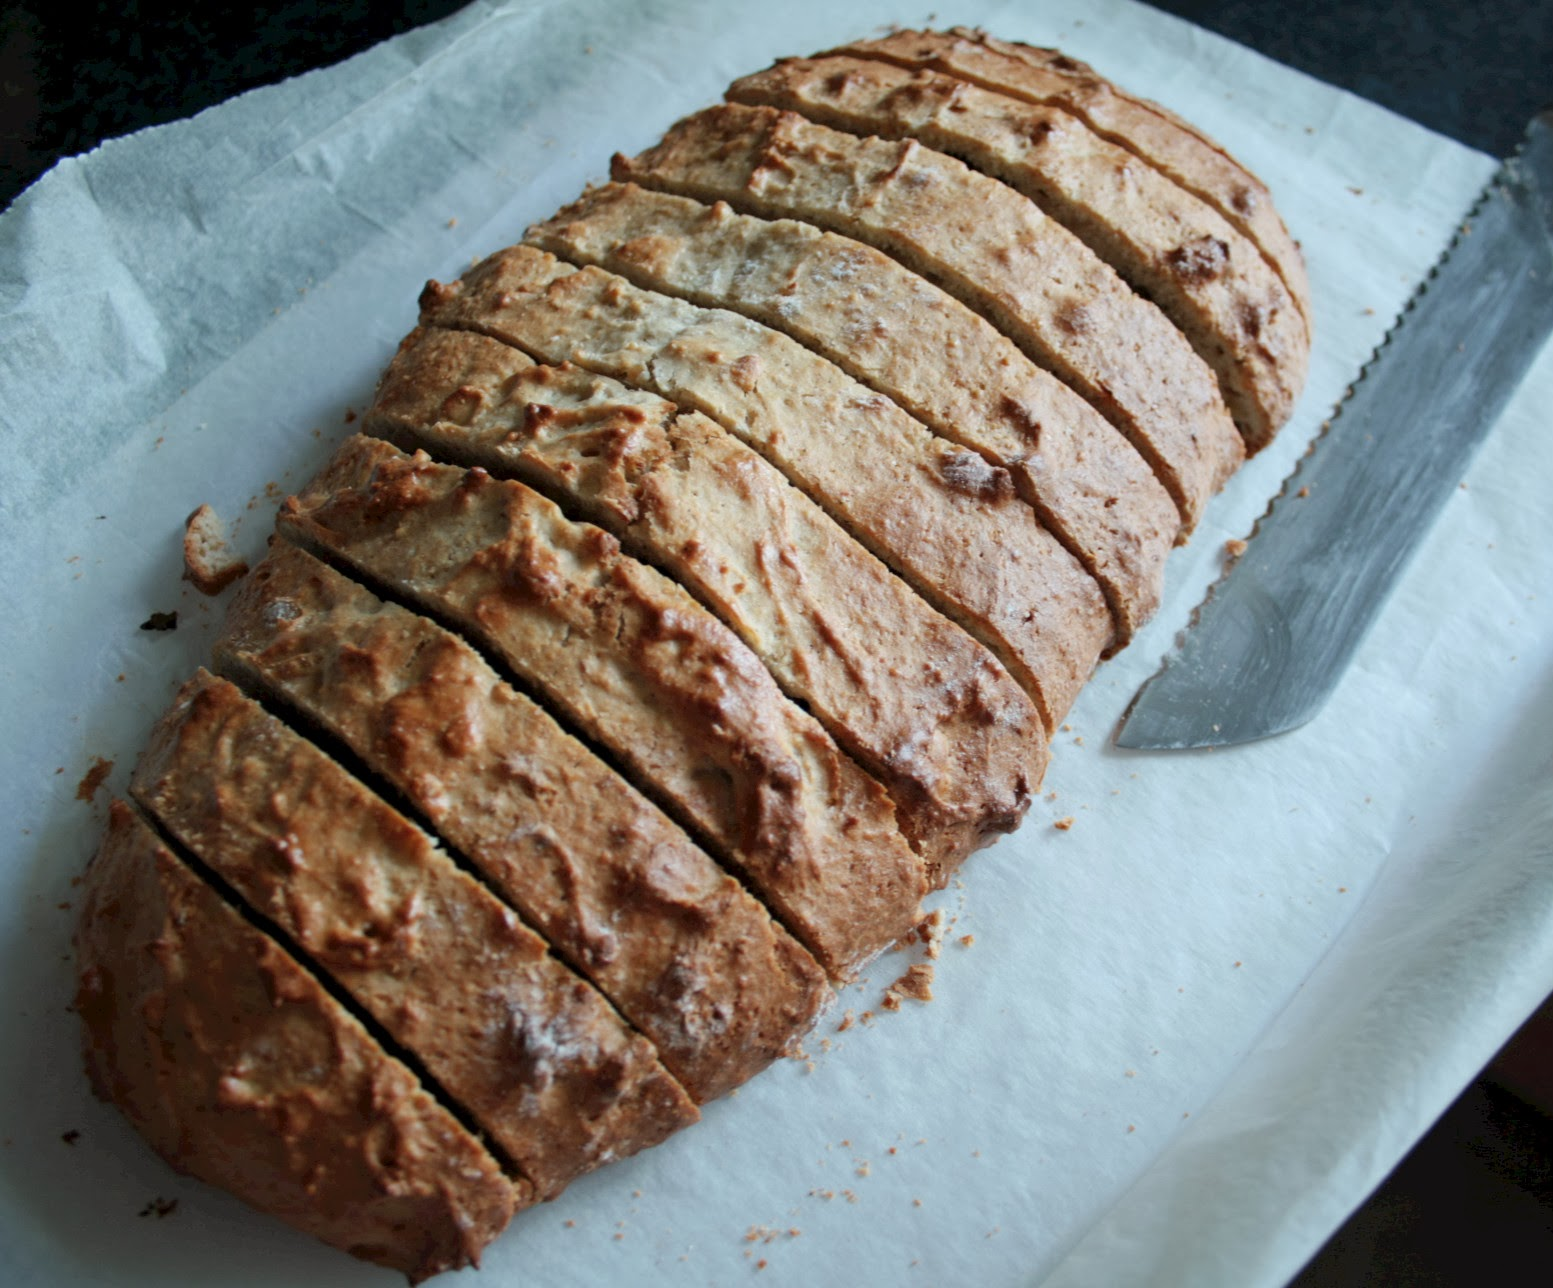 Overripe bananas are perfect to use in this recipe for banana and nut biscotti